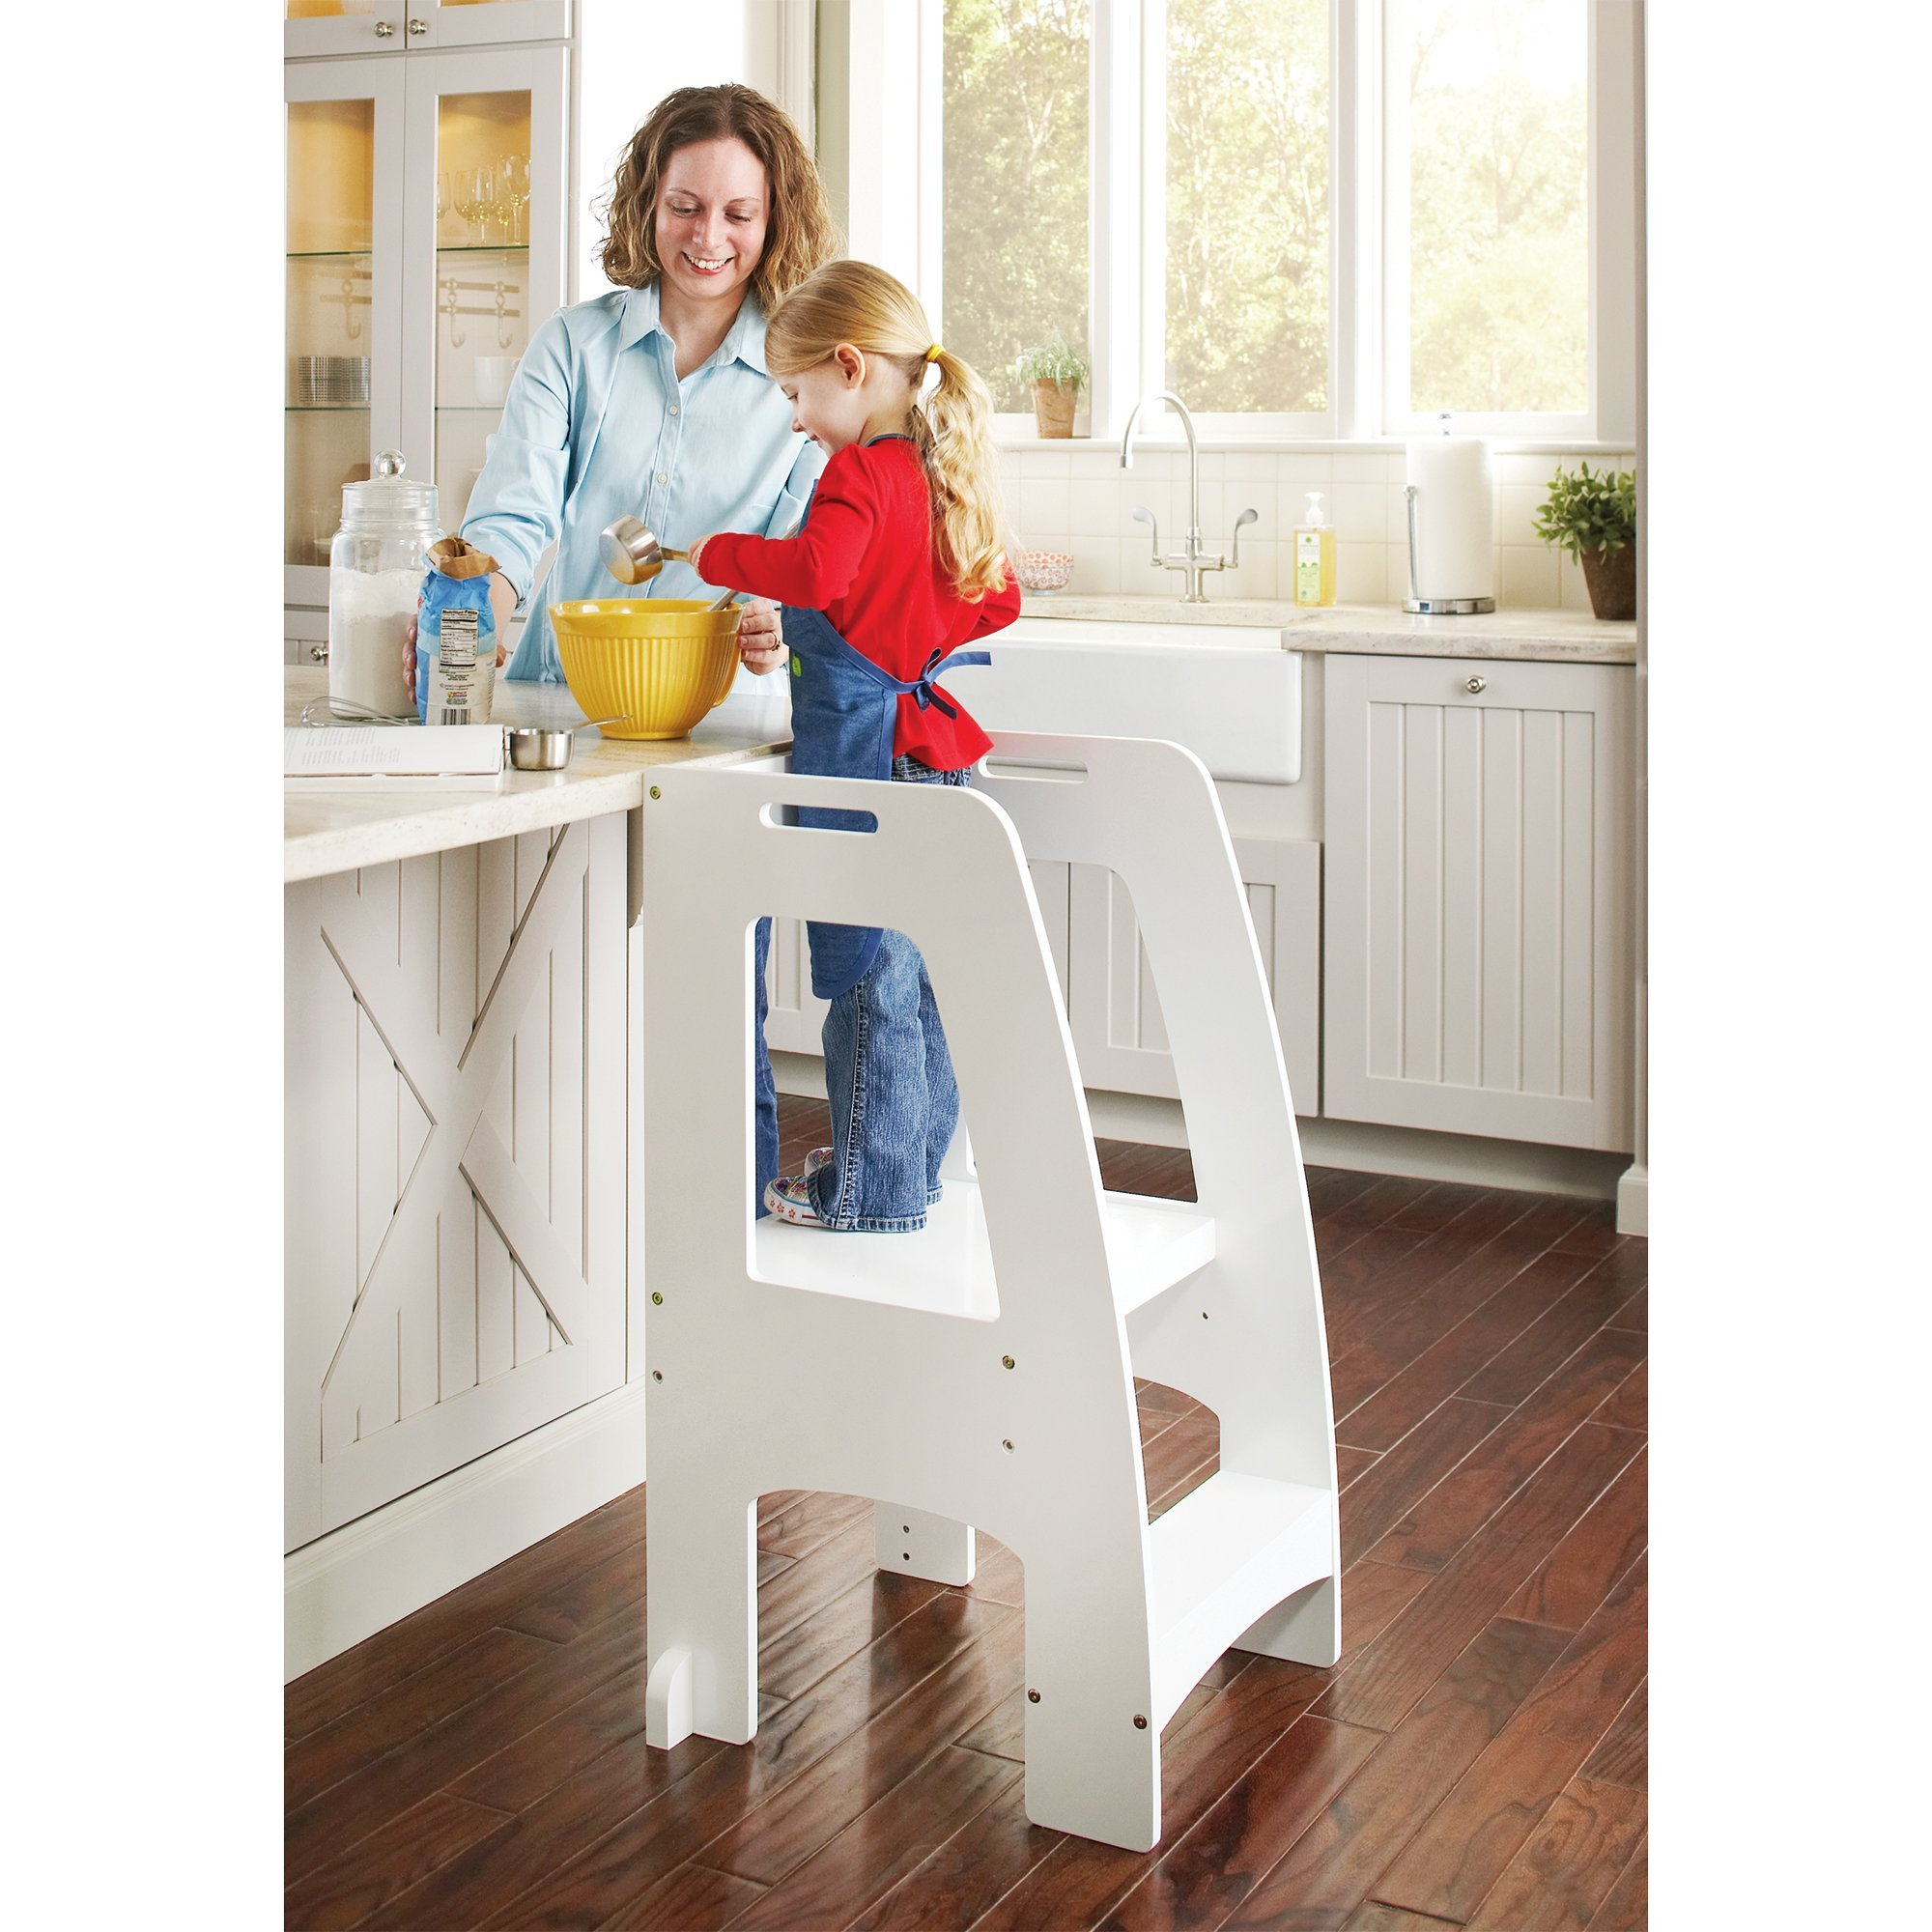 Guidecraft Kitchen Helper Tower Step-Up - White: Kids' Wooden, Adjustable Height, Step Stool with Safety Rails for Little Children - Toddler Learning Furniture by Guidecraft